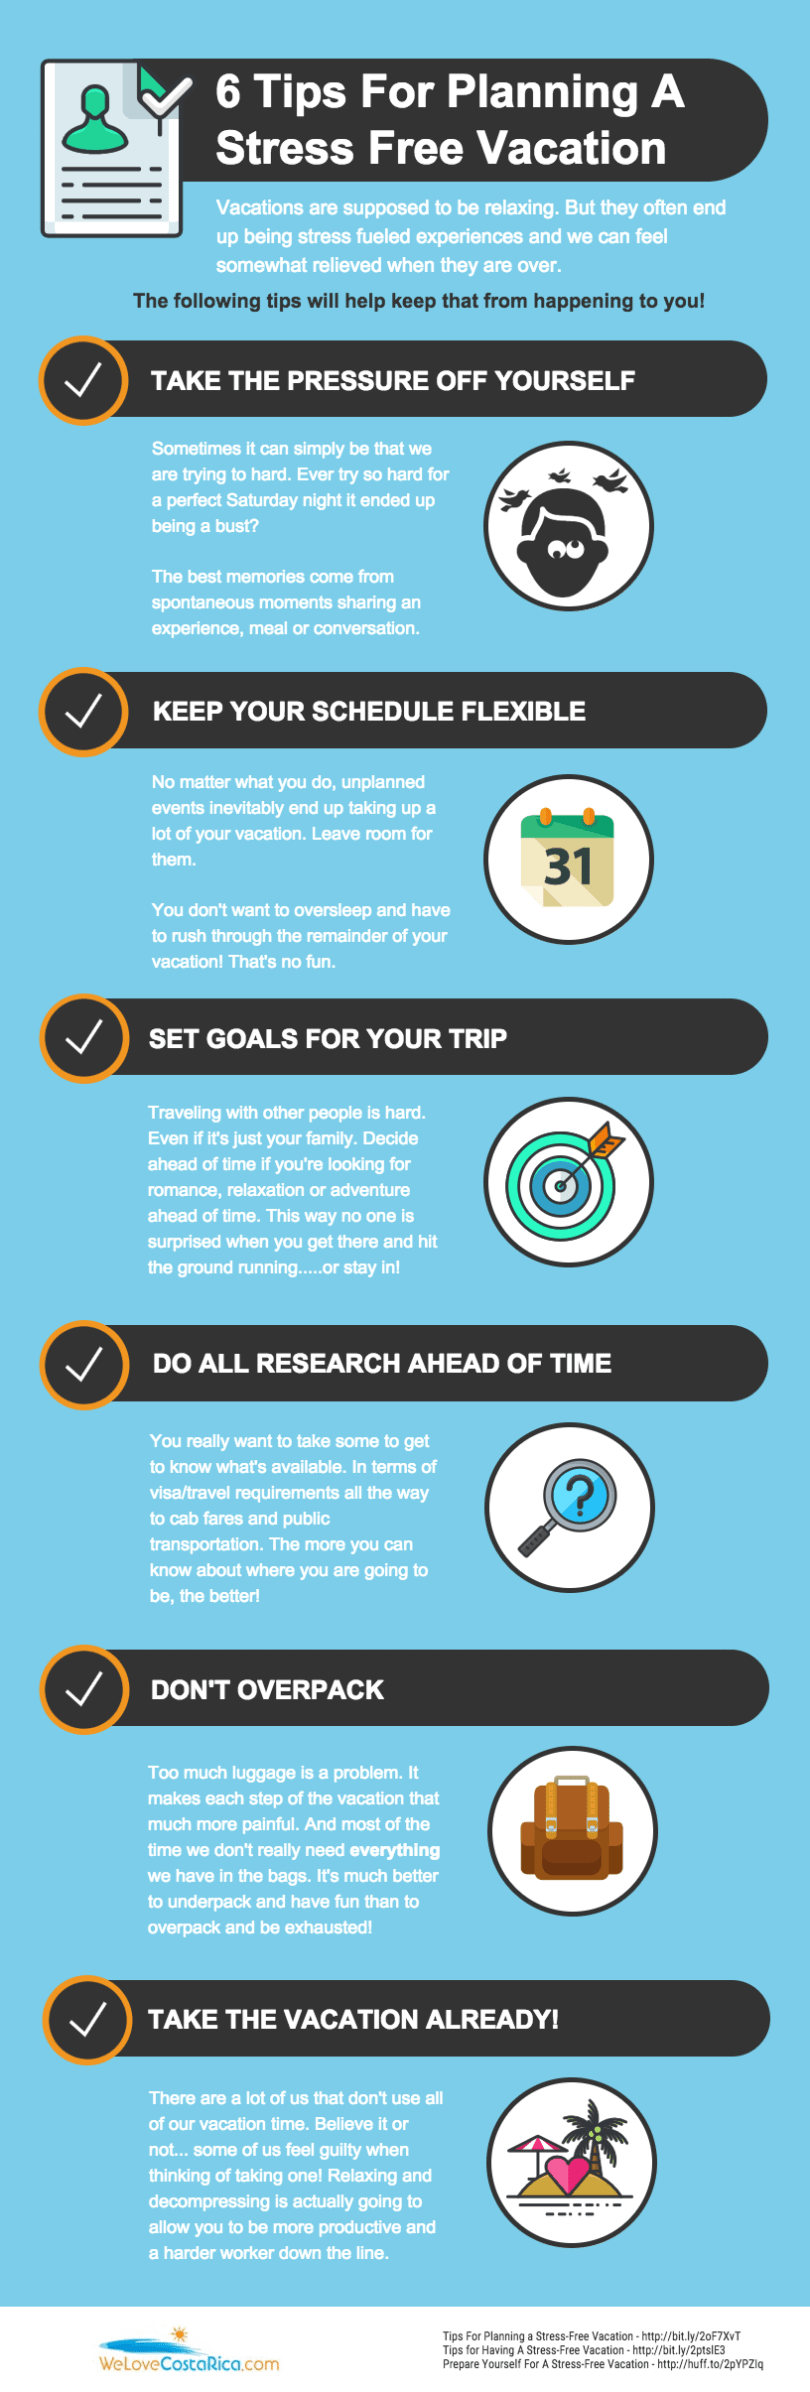 6 Tips For Planning A Stress Free Vacation